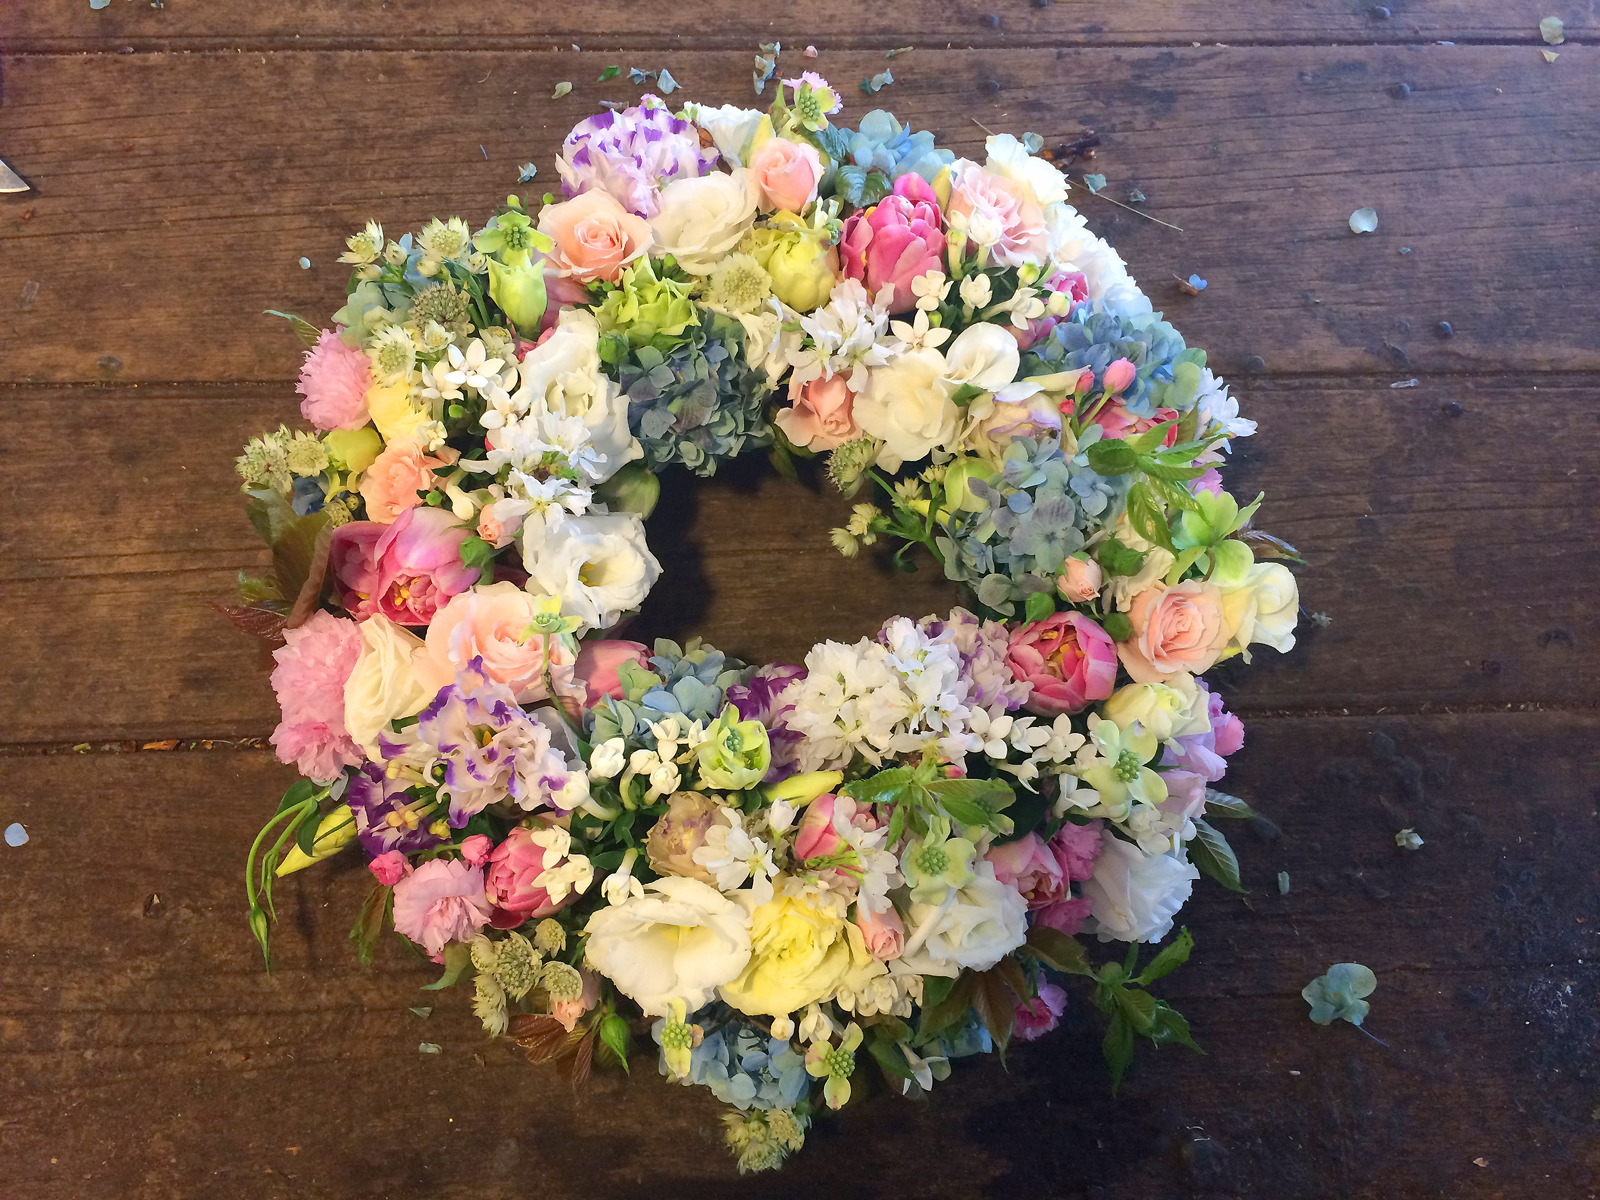 Funeral Wreath made with Spring Flowers and Dogwood